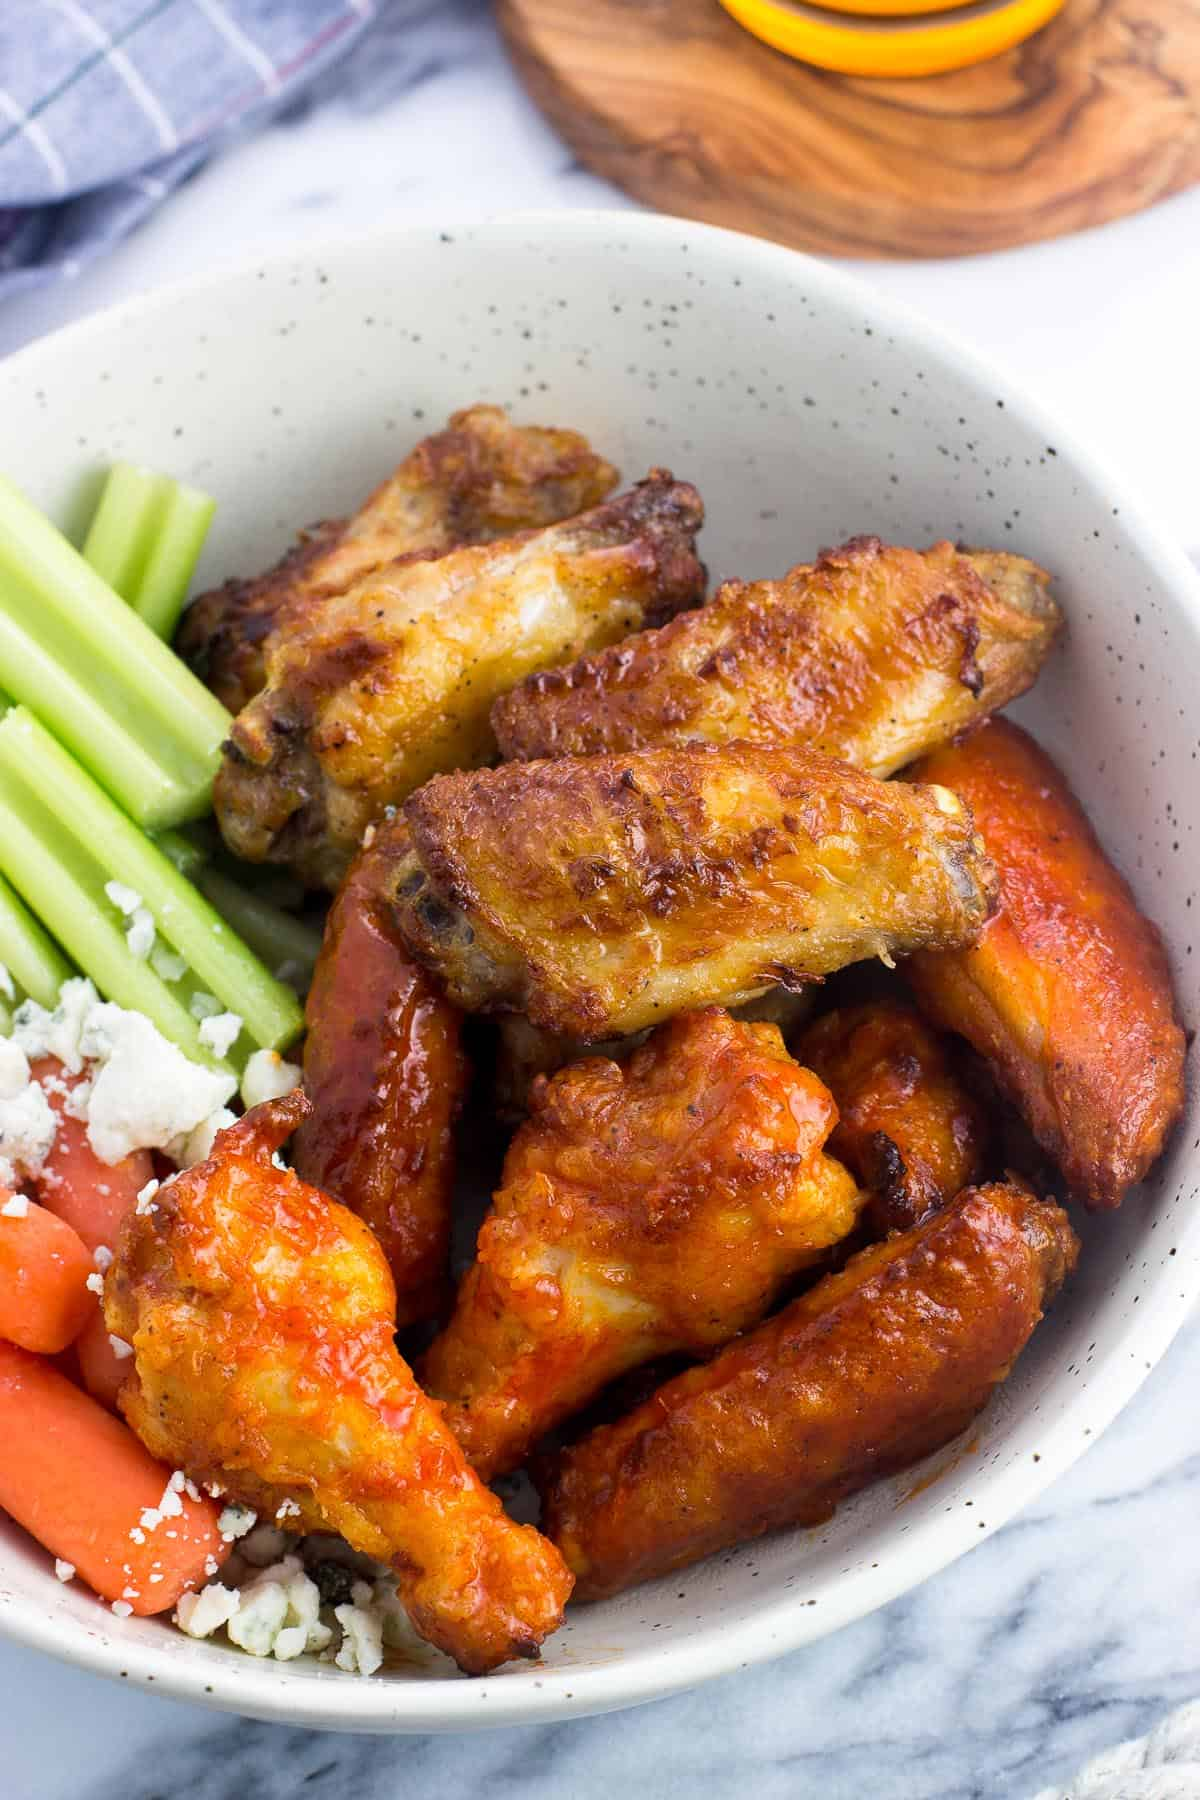 A bowl filled with chicken wings (half plain and half coated in hot sauce) with celery sticks, baby carrots, and crumbled blue cheese